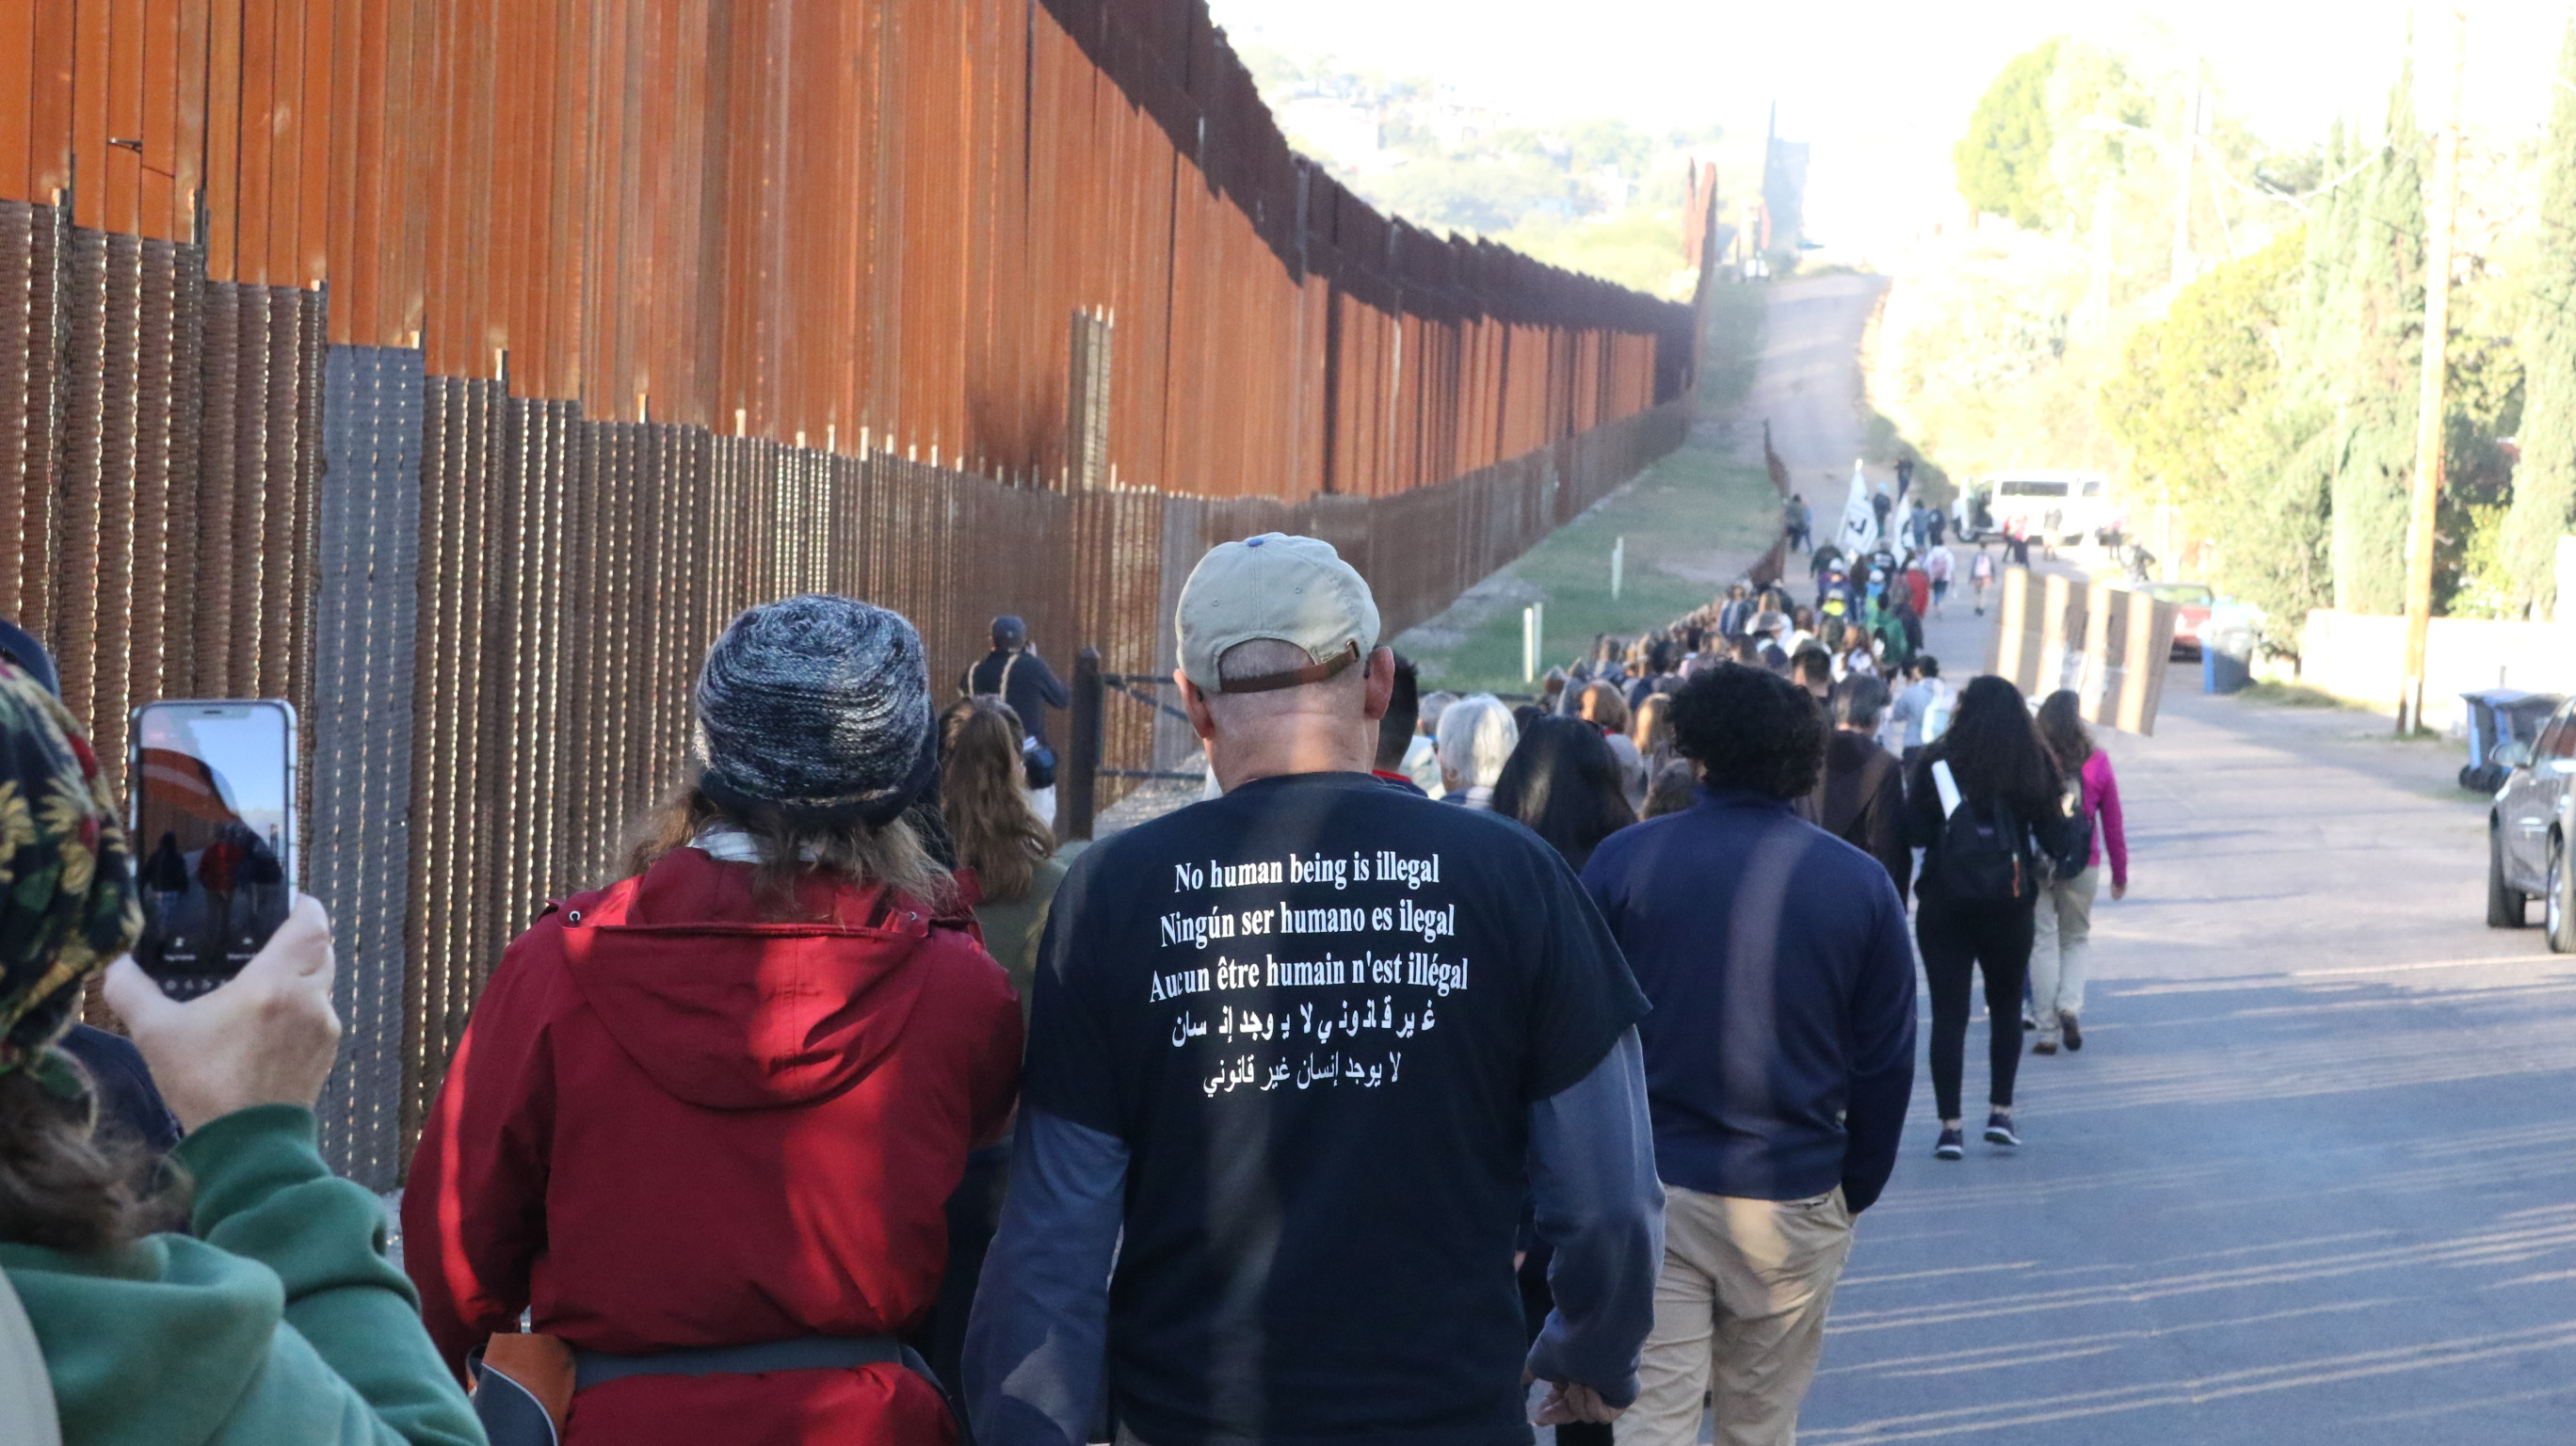 SOA Watch joined by hundreds at Nogales encuentro